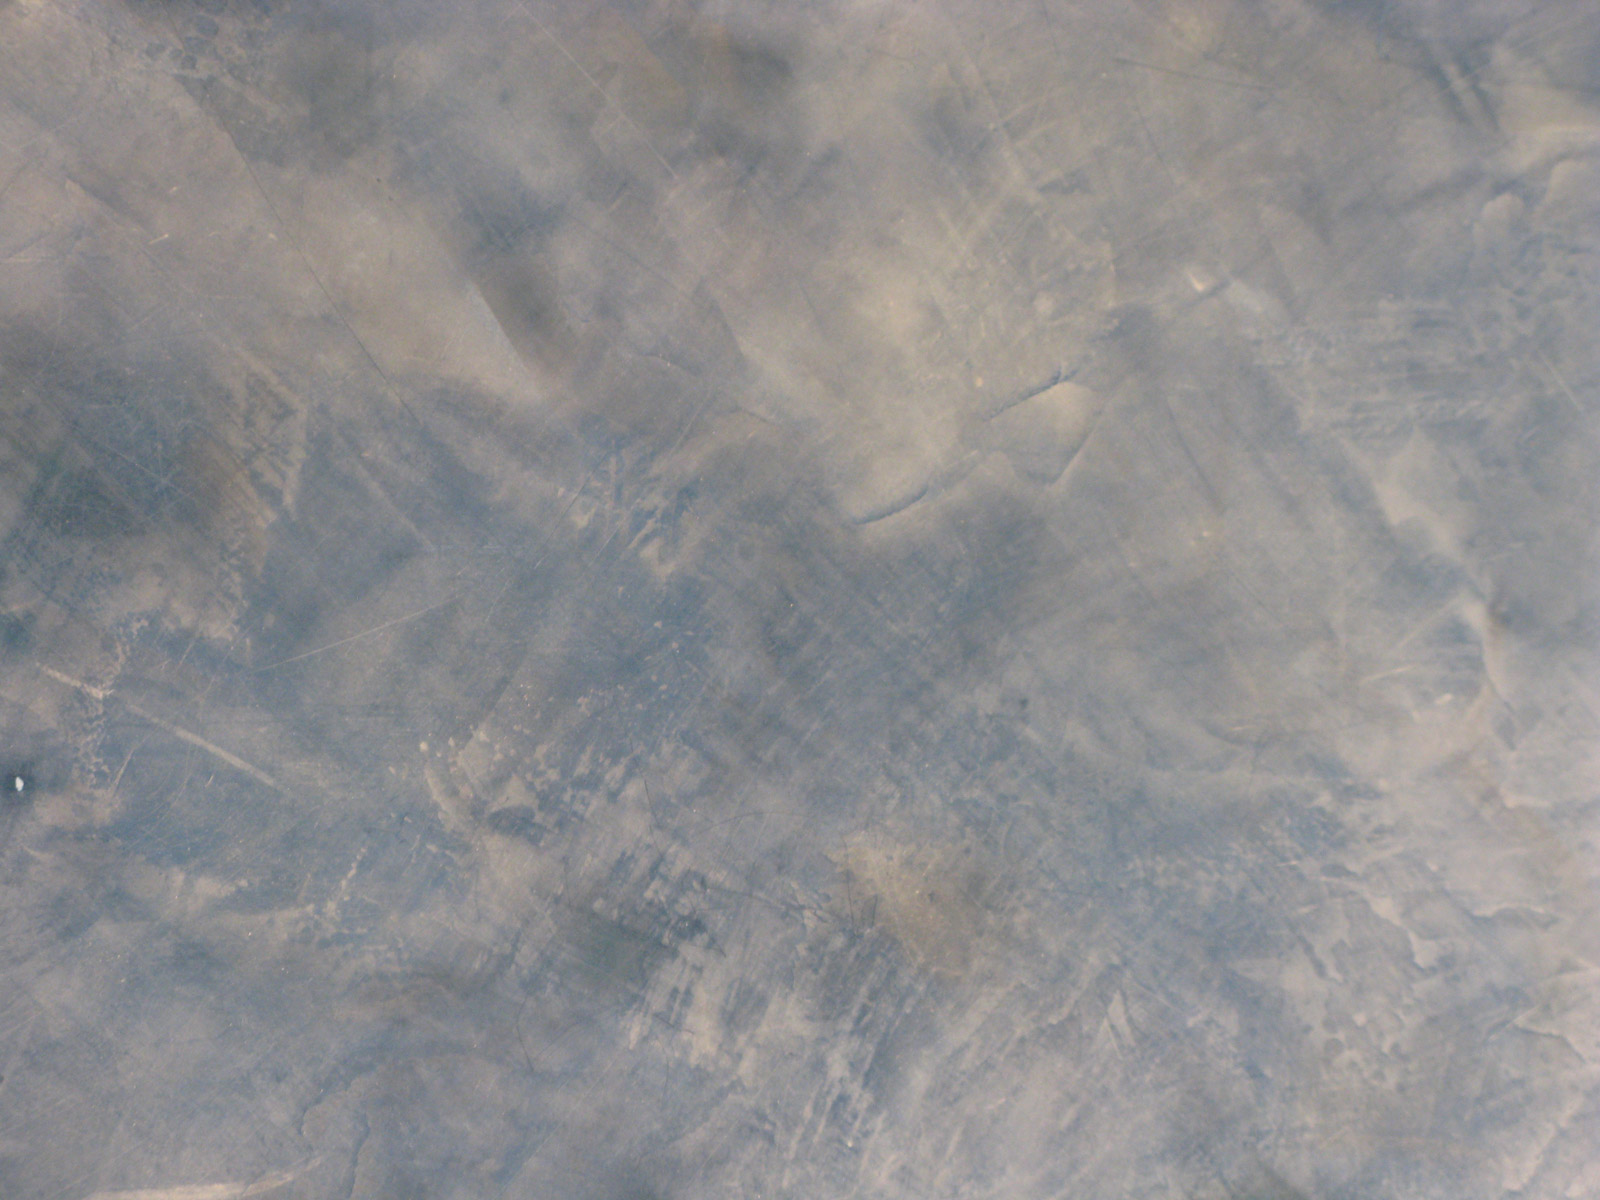 Venetian Plaster With Special Mica Powder Finish And Wax (click To Enlarge)